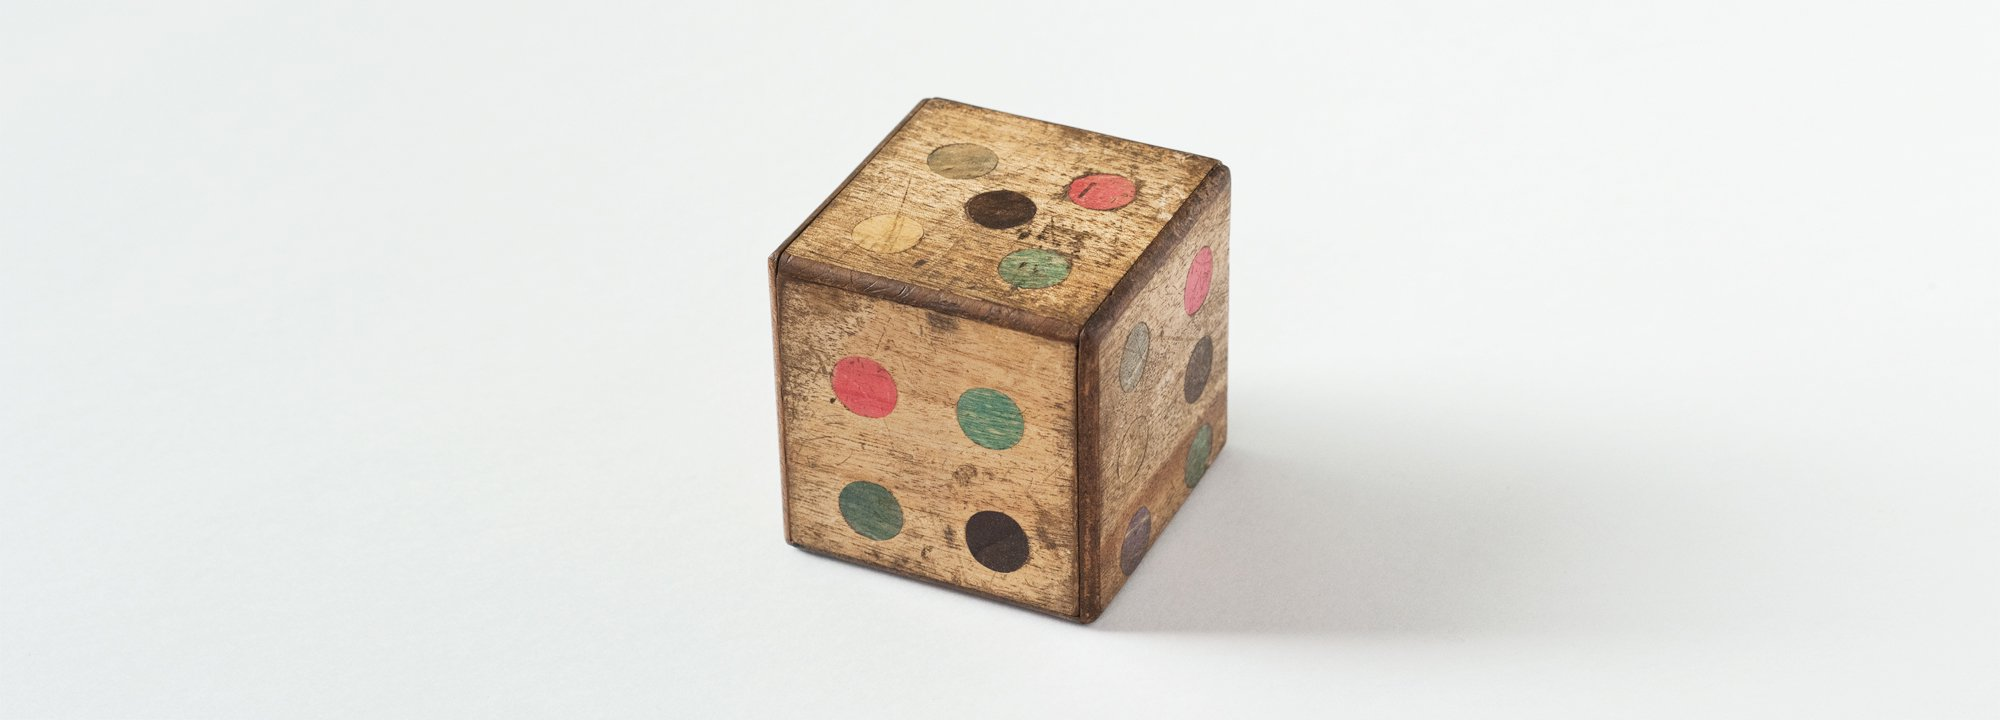 Vintage Object : Wooden Box